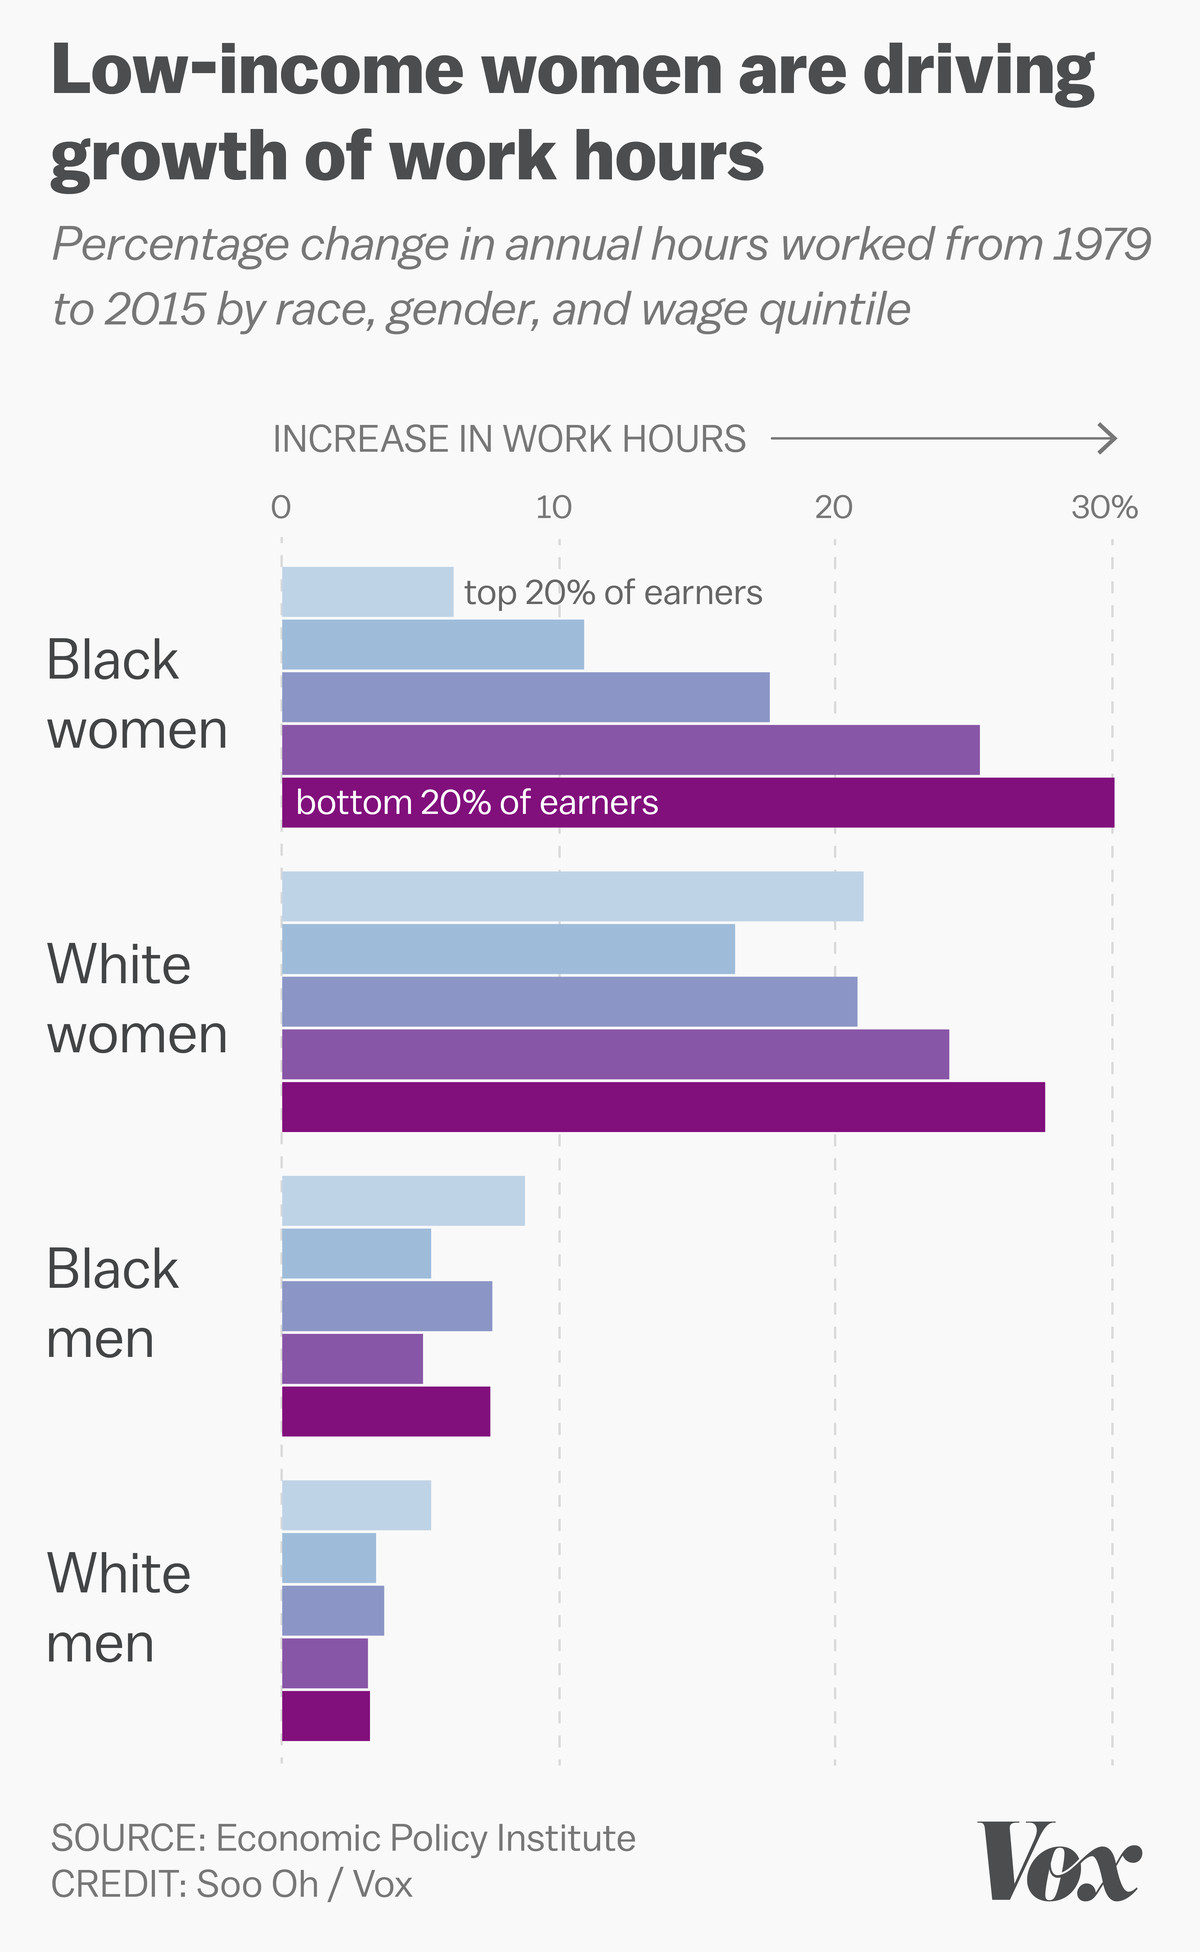 Grouped bar chart split up by race, gender, and wage group showing the increase of hours worked since 1979.